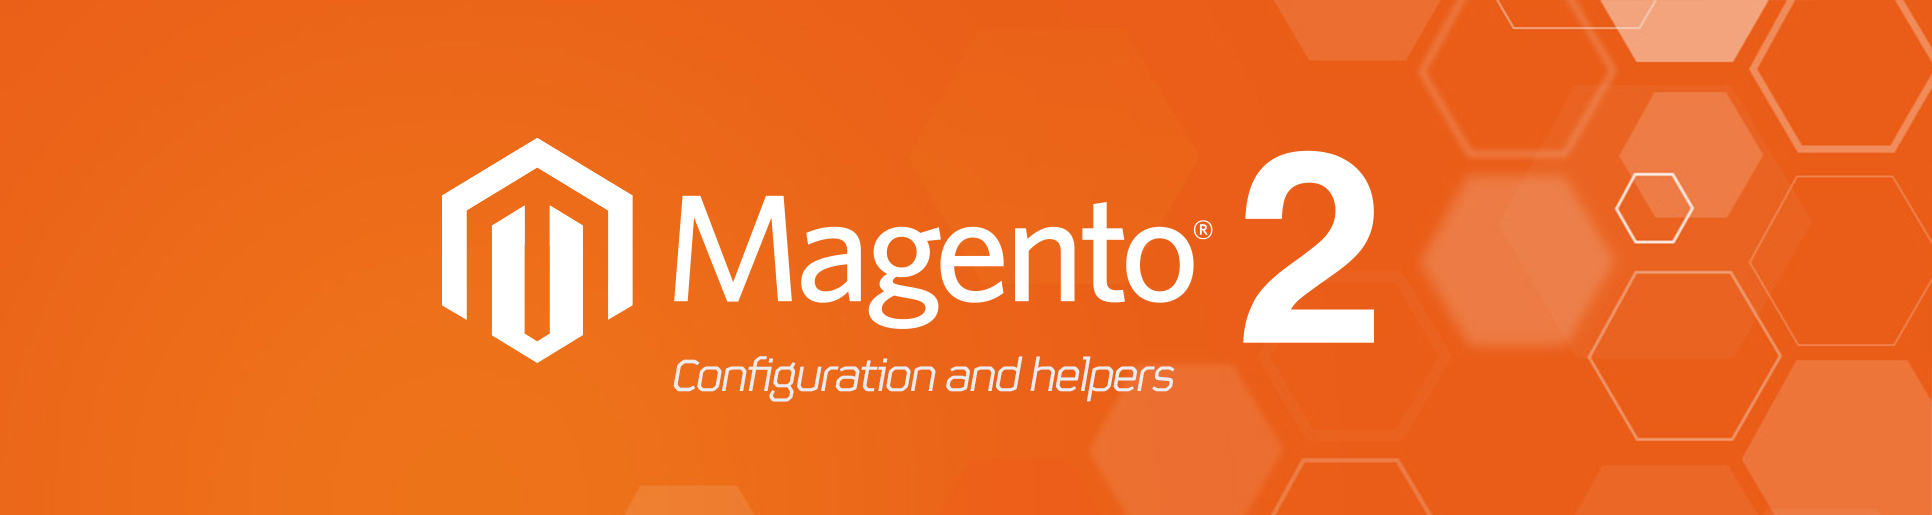 How to use system configuration and helpers in Magento 2